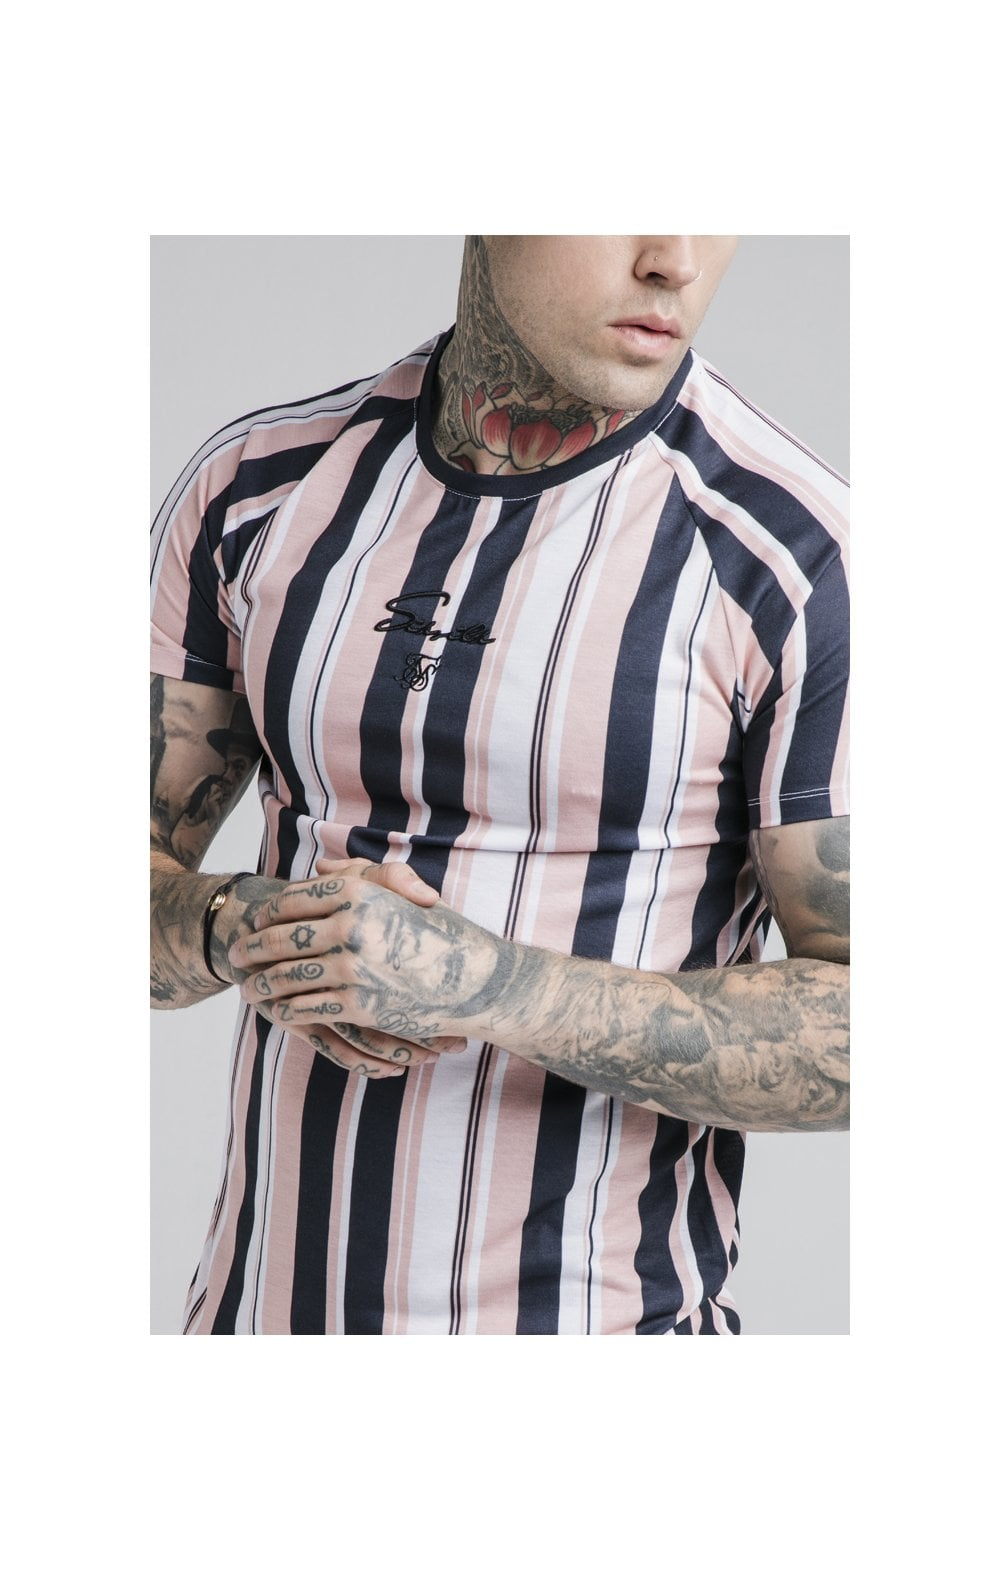 SikSilk Raglan Tech Tee - Navy, Pink & White (1)